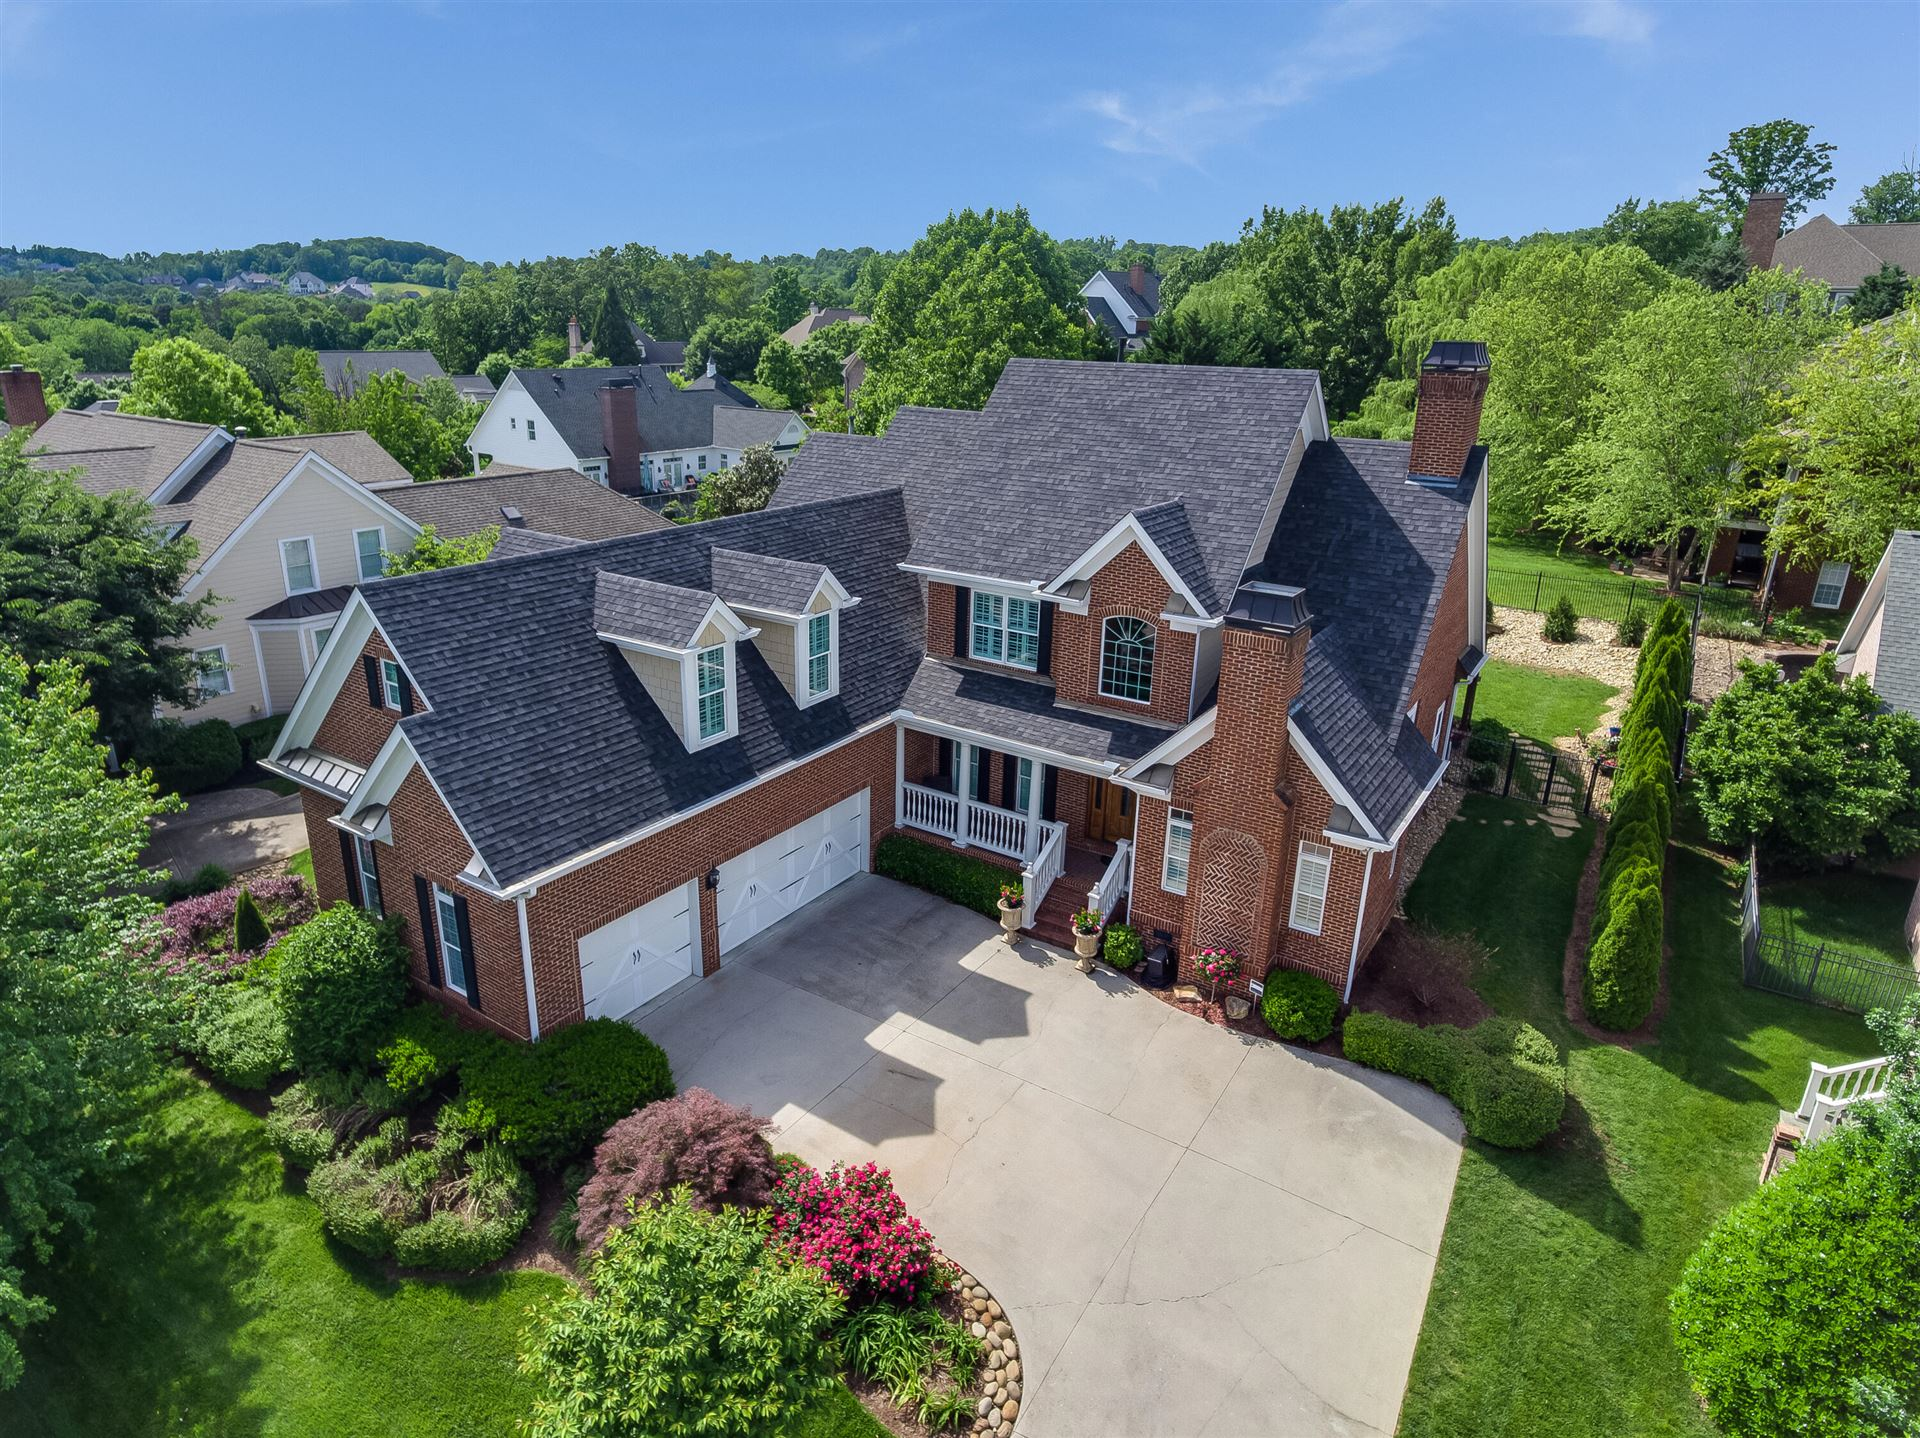 Photo of 735 Prince George Parish Drive, Knoxville, TN 37934 (MLS # 1162273)